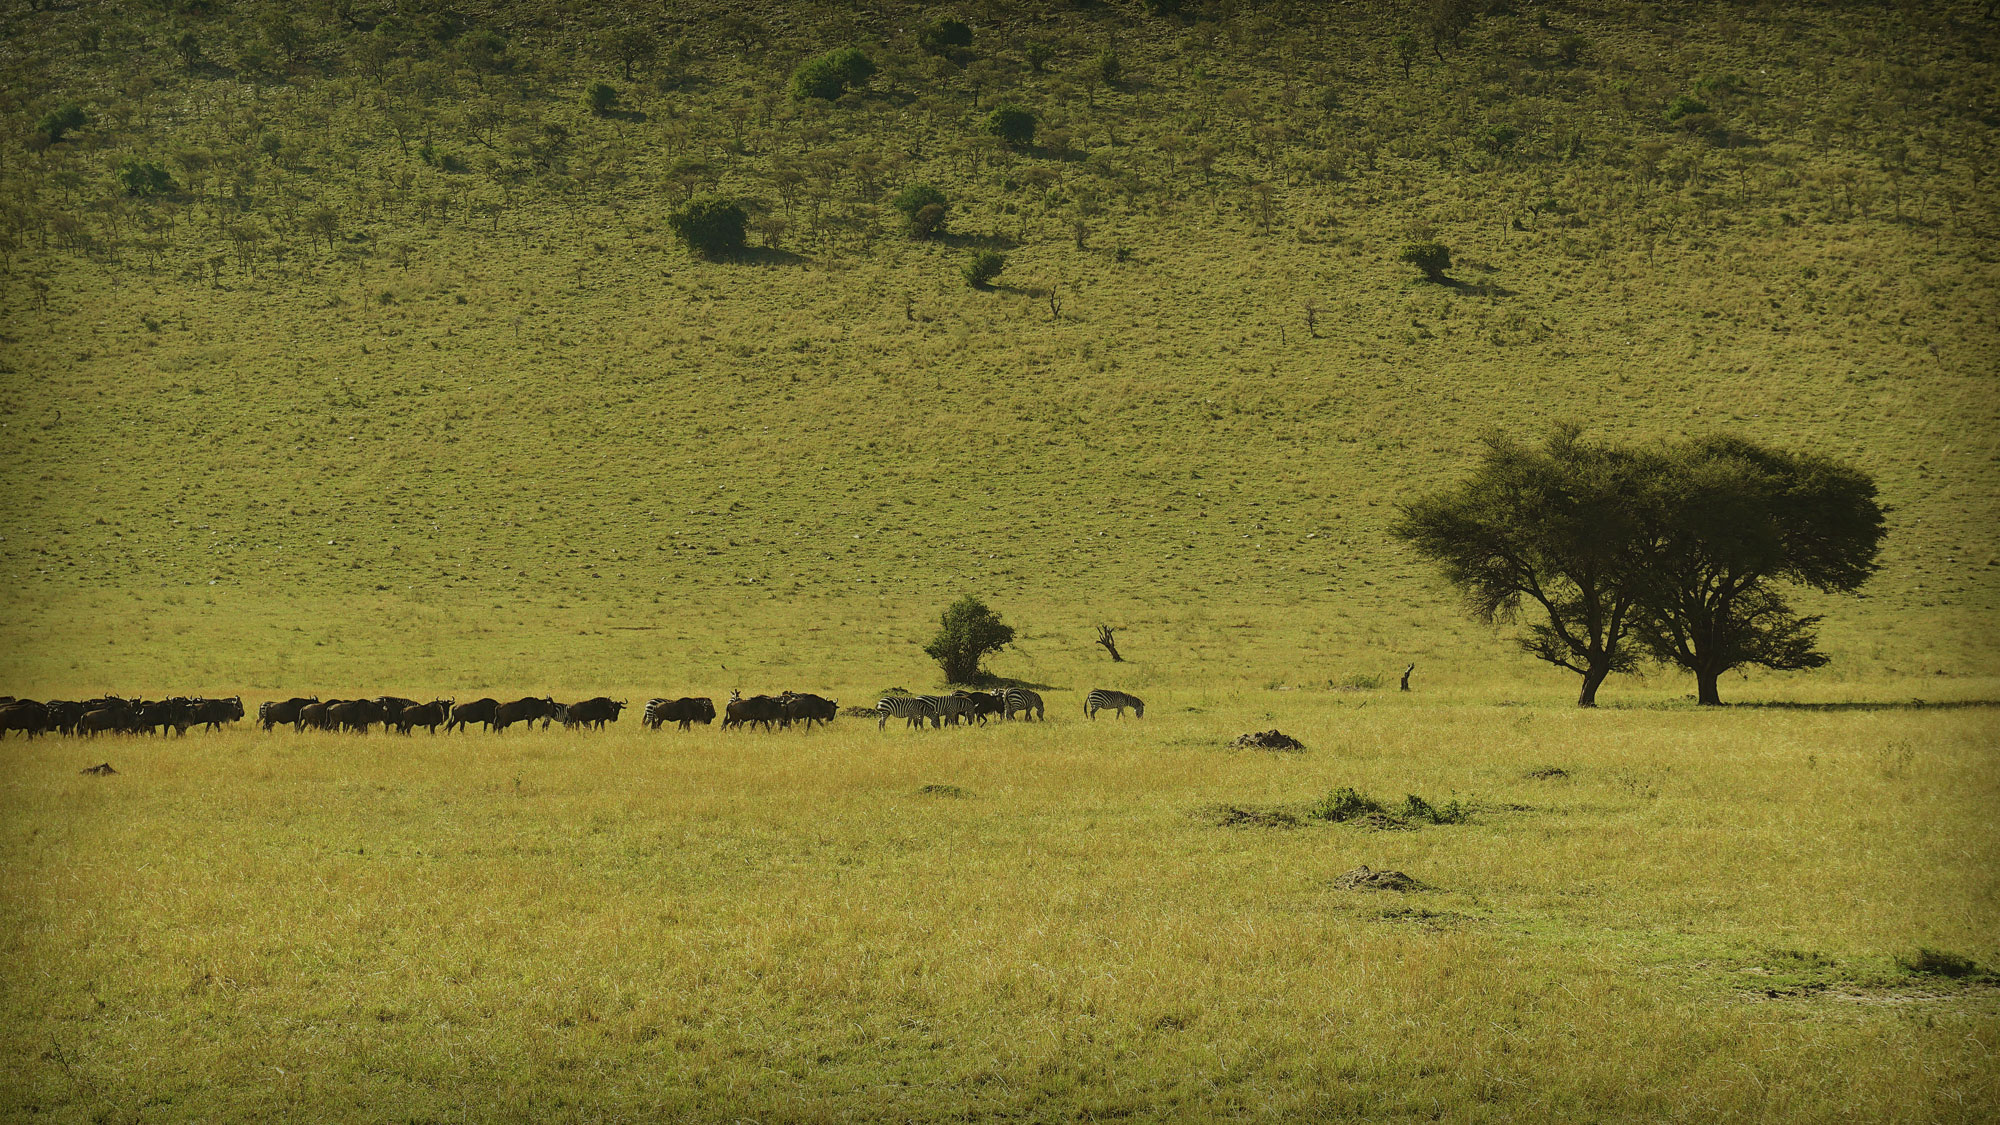 Serengeti & The Great Migration